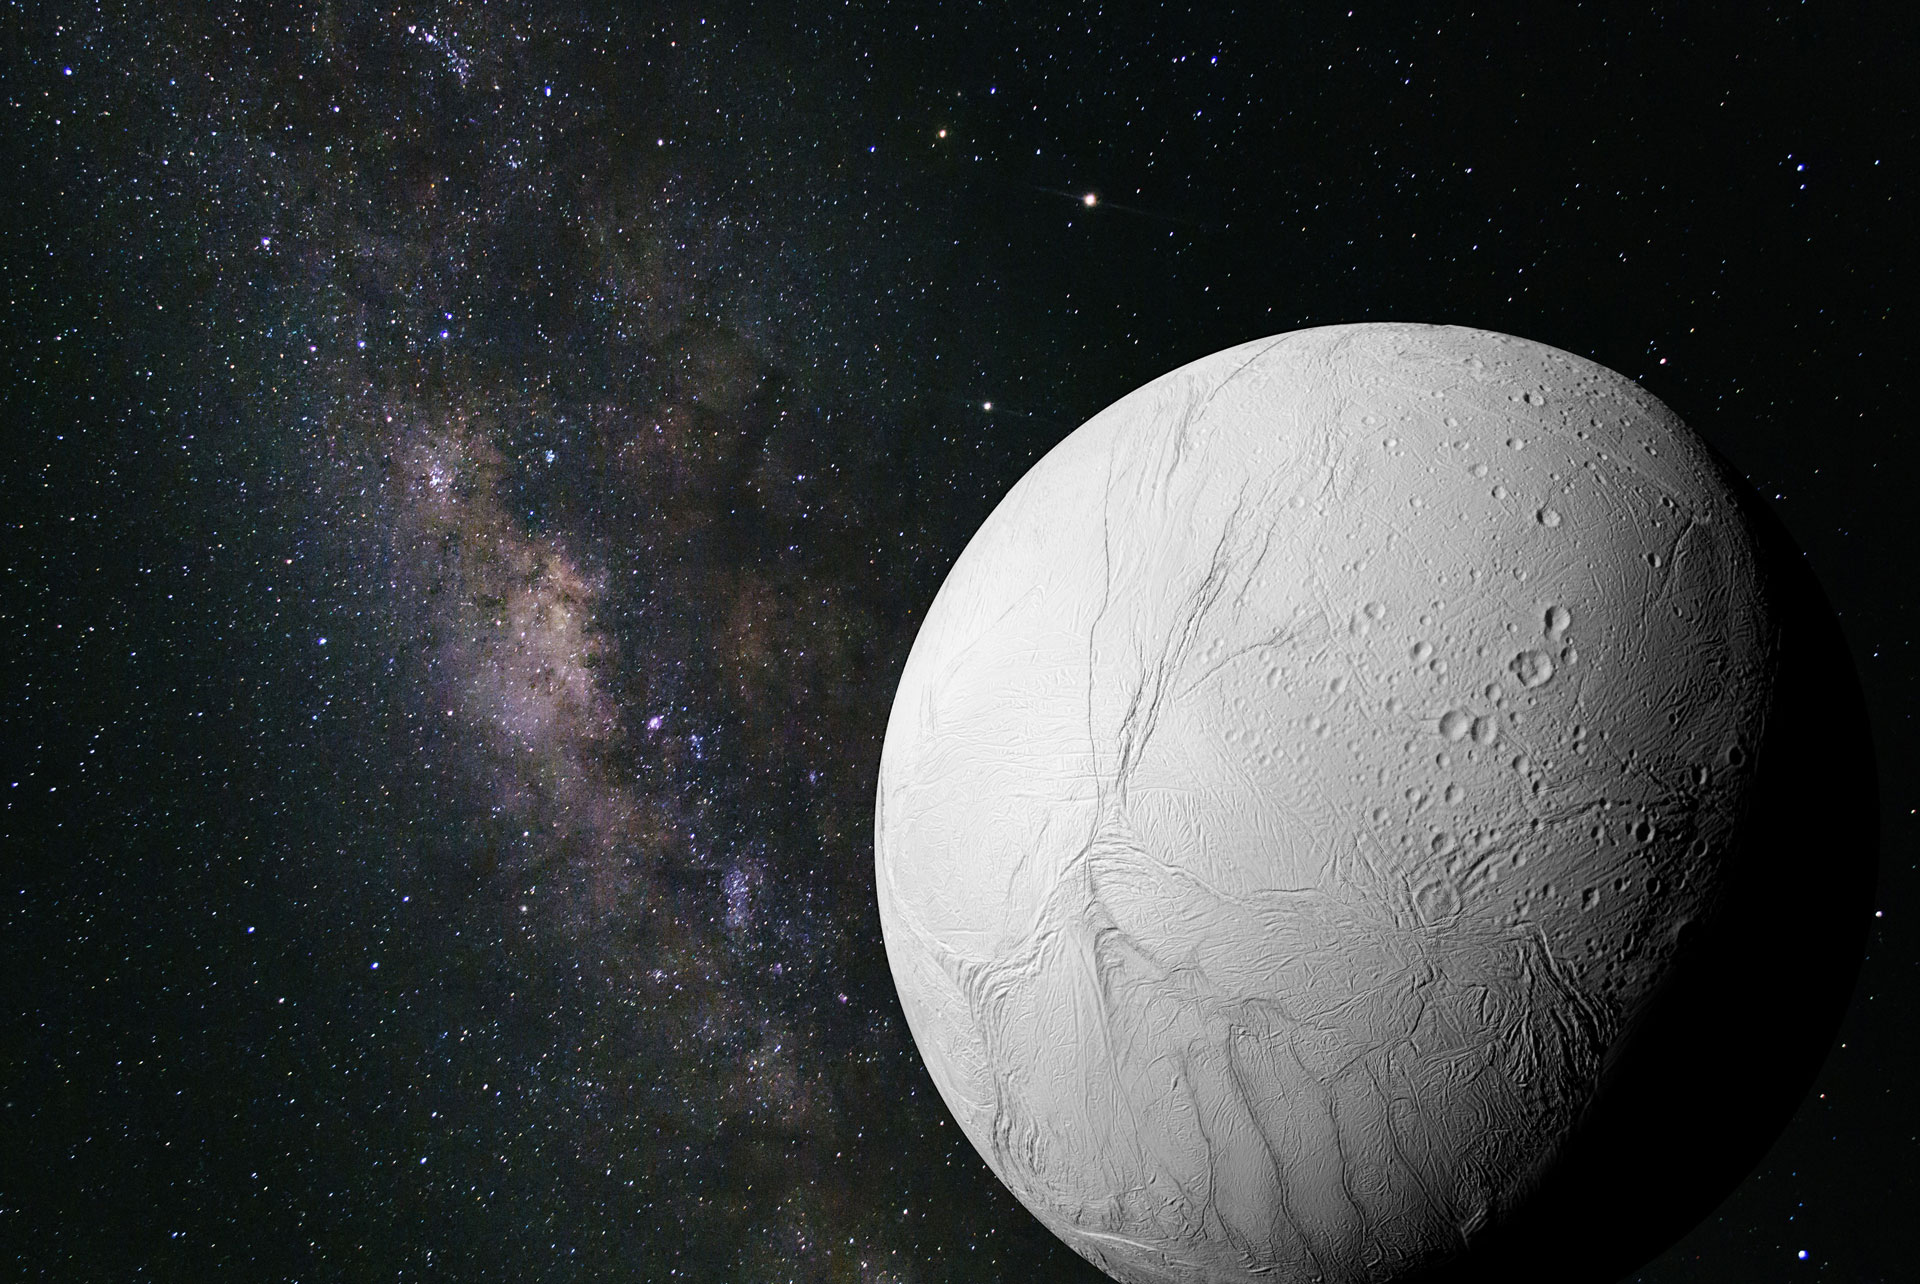 Are Distant Snowy Moons Potentially Habitable?